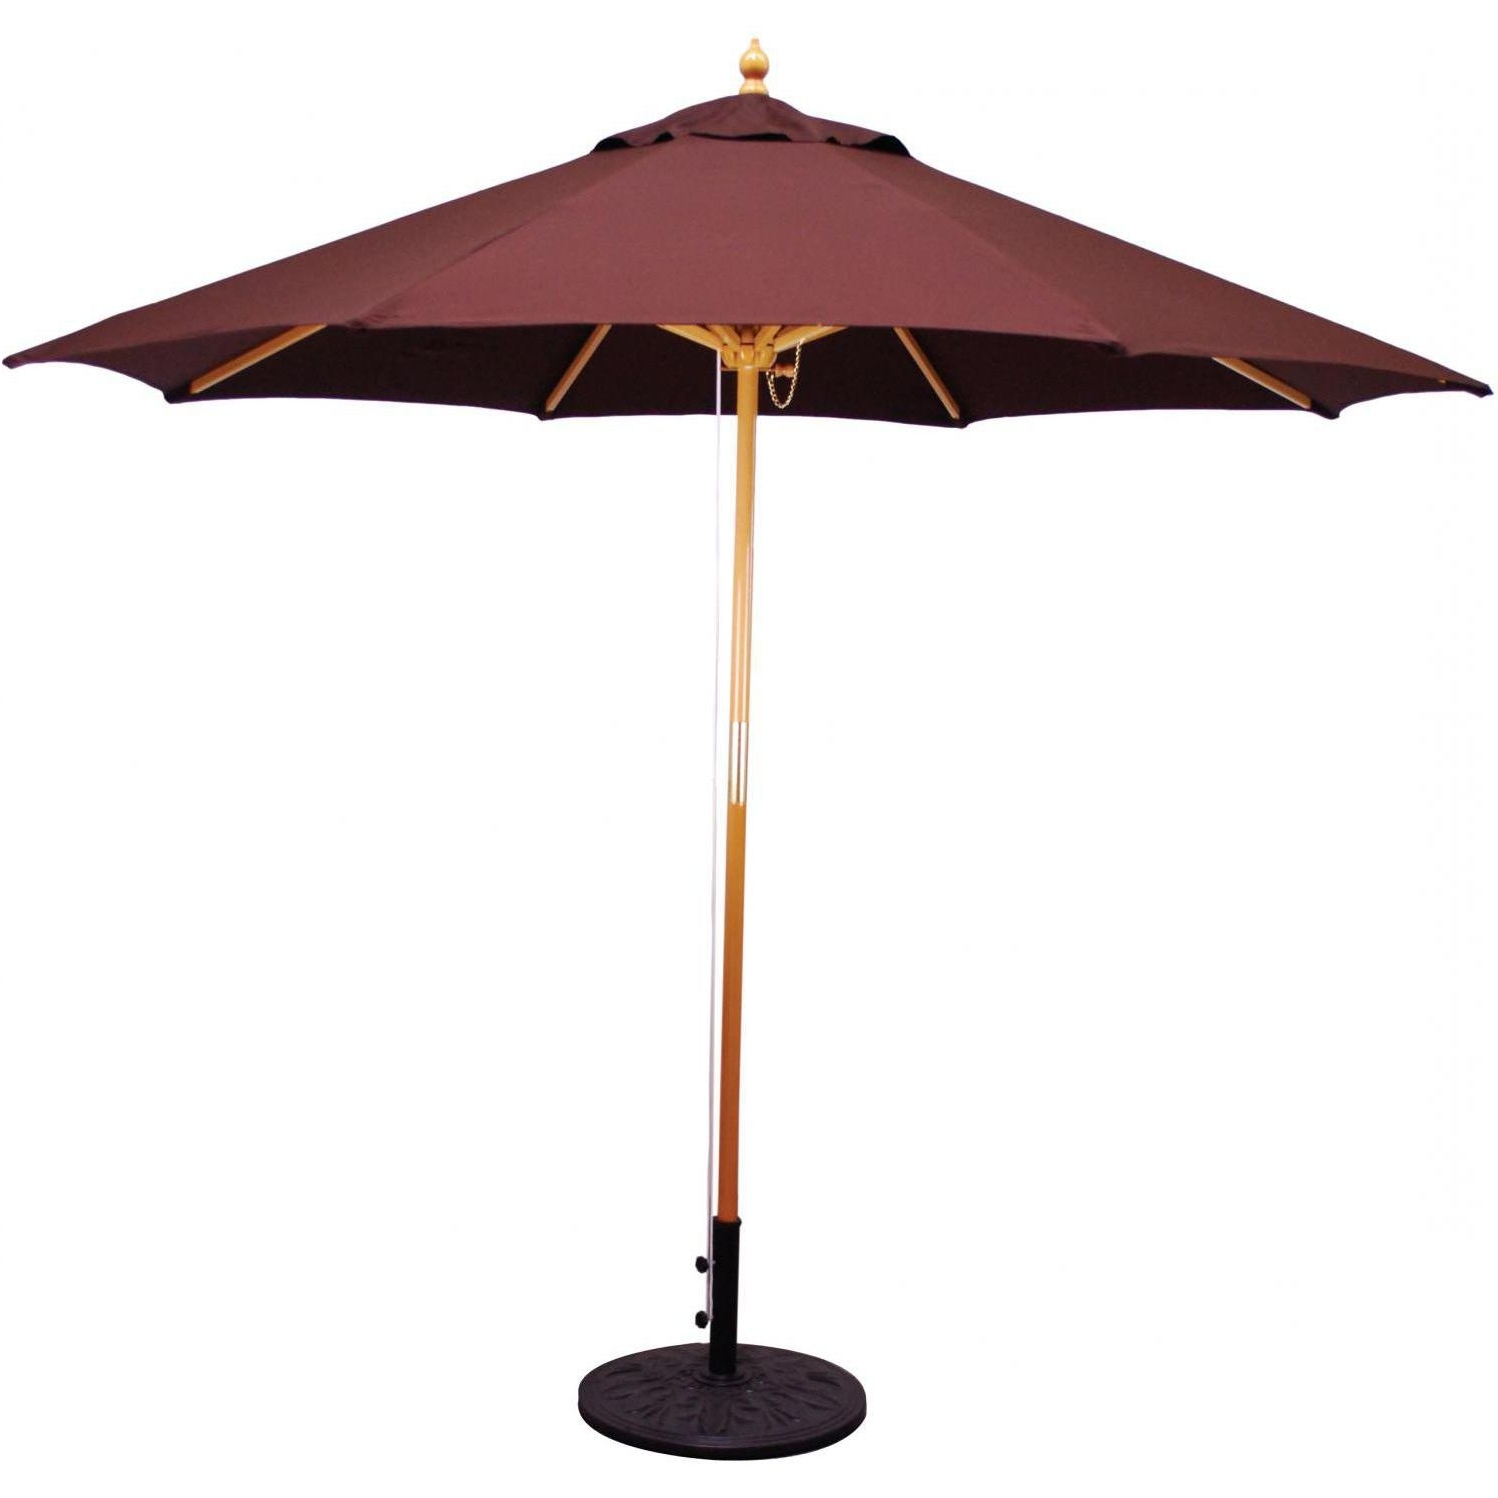 Galtech 9 Ft Wood Patio Fascinating Wooden Patio Umbrellas – Home With Popular Wooden Patio Umbrellas (View 4 of 20)